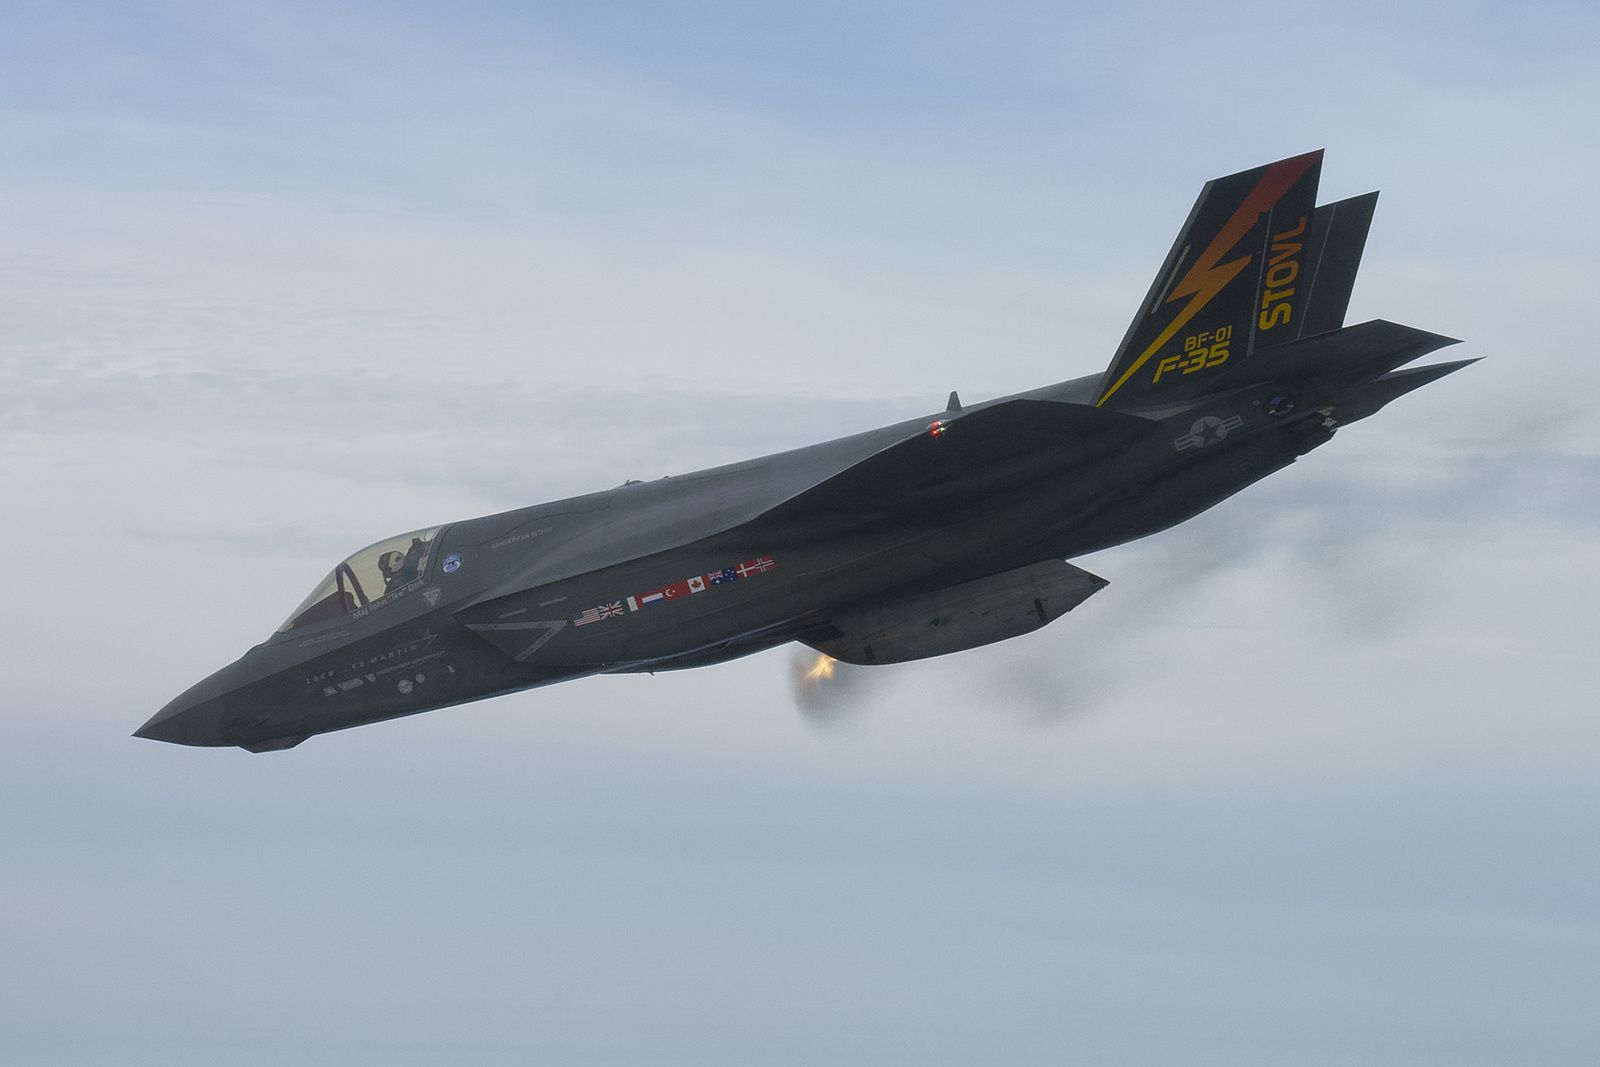 VIDEO - Le F-35B Lightning II a terminé les essais en vol de son canon